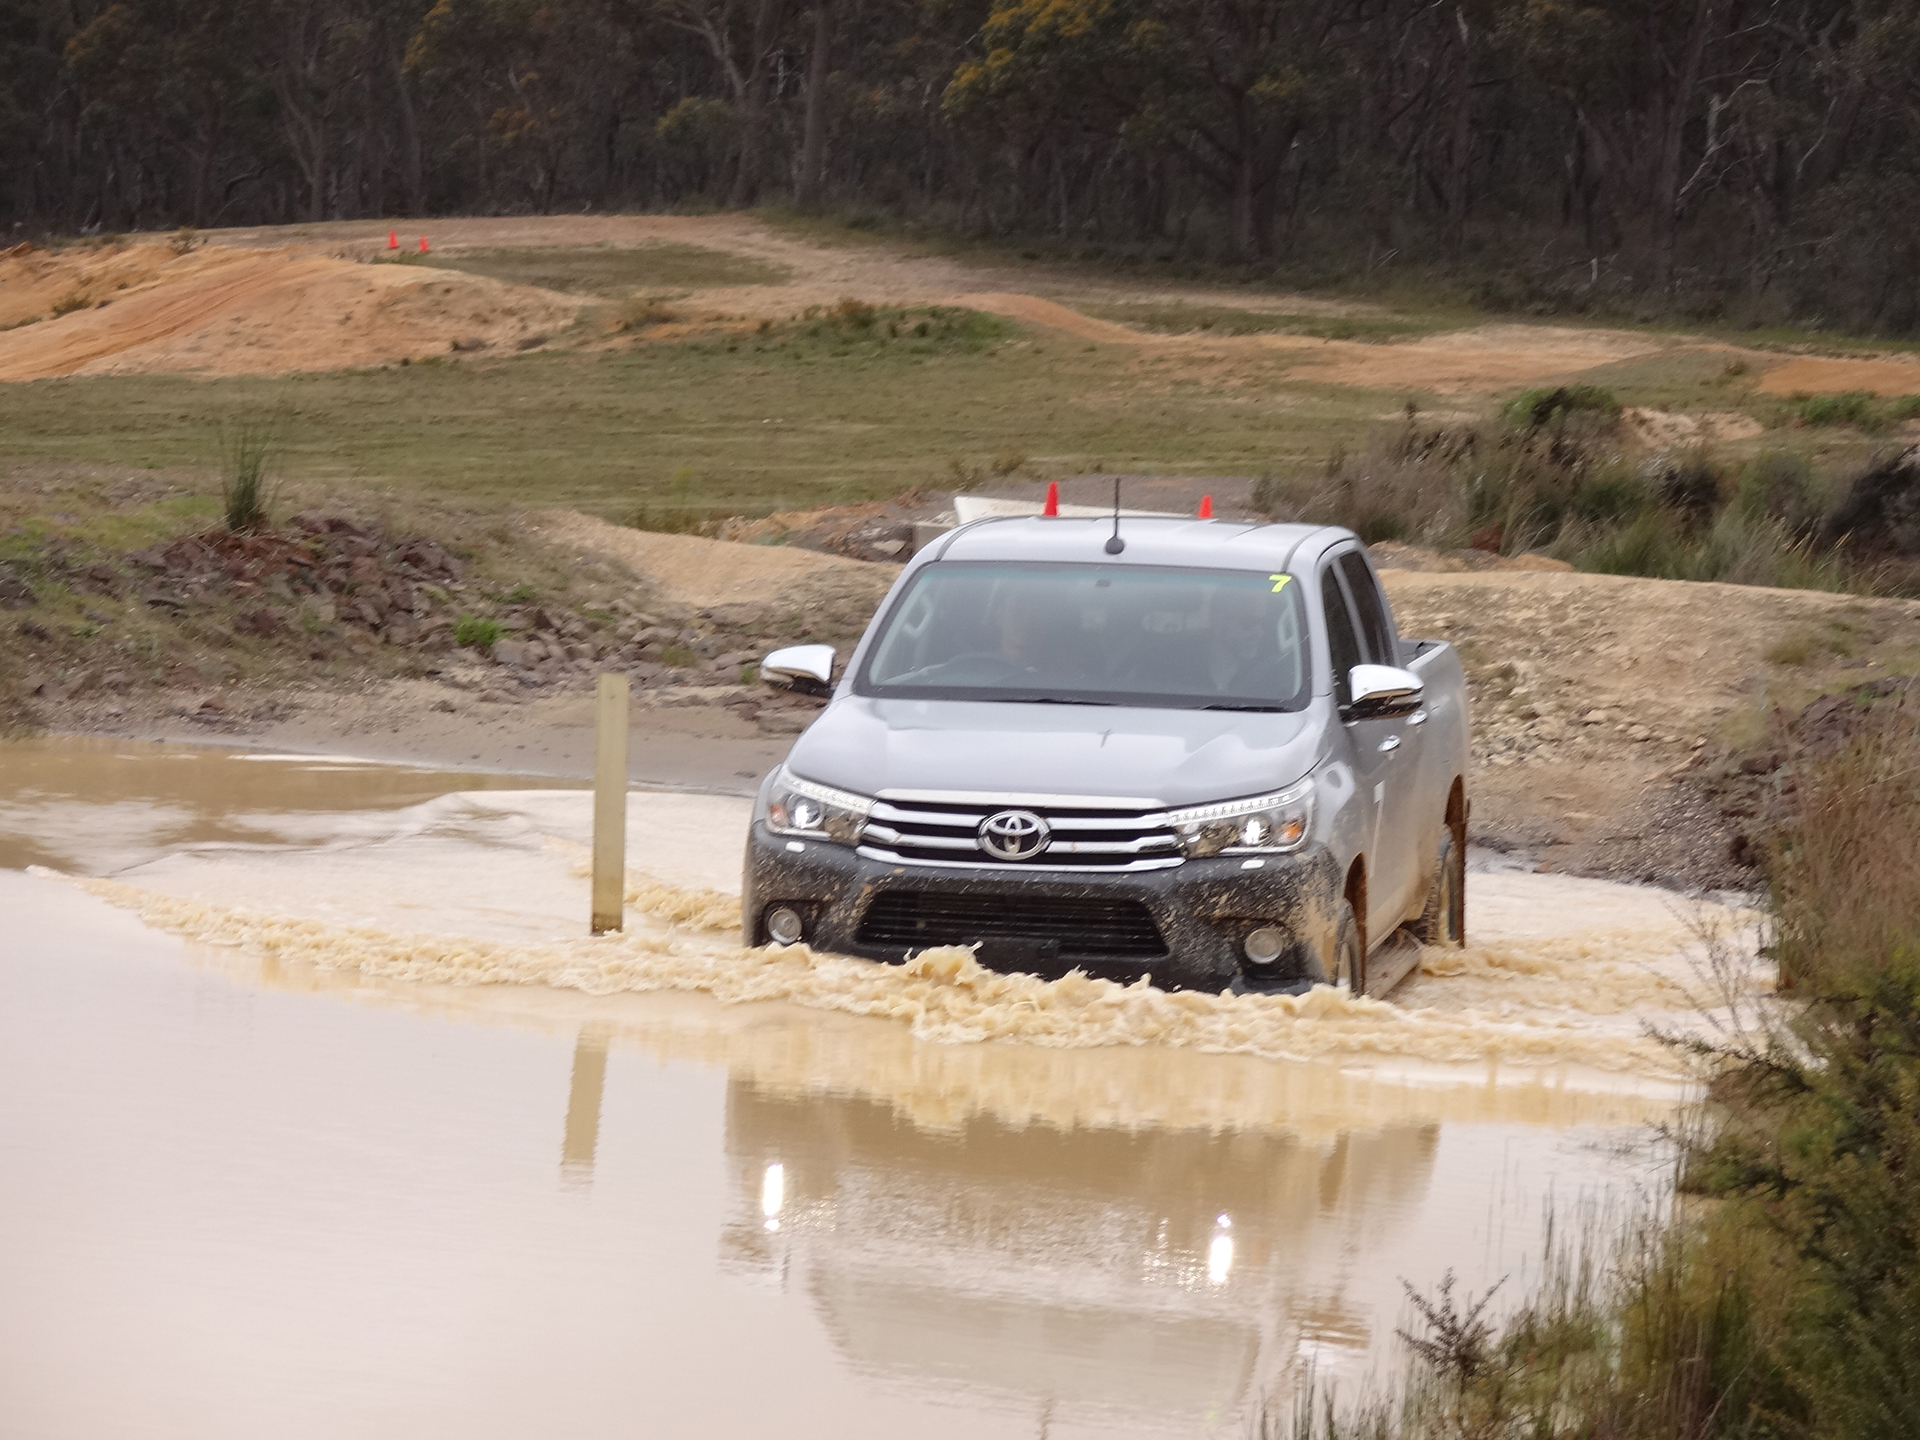 Testing the new Hilux